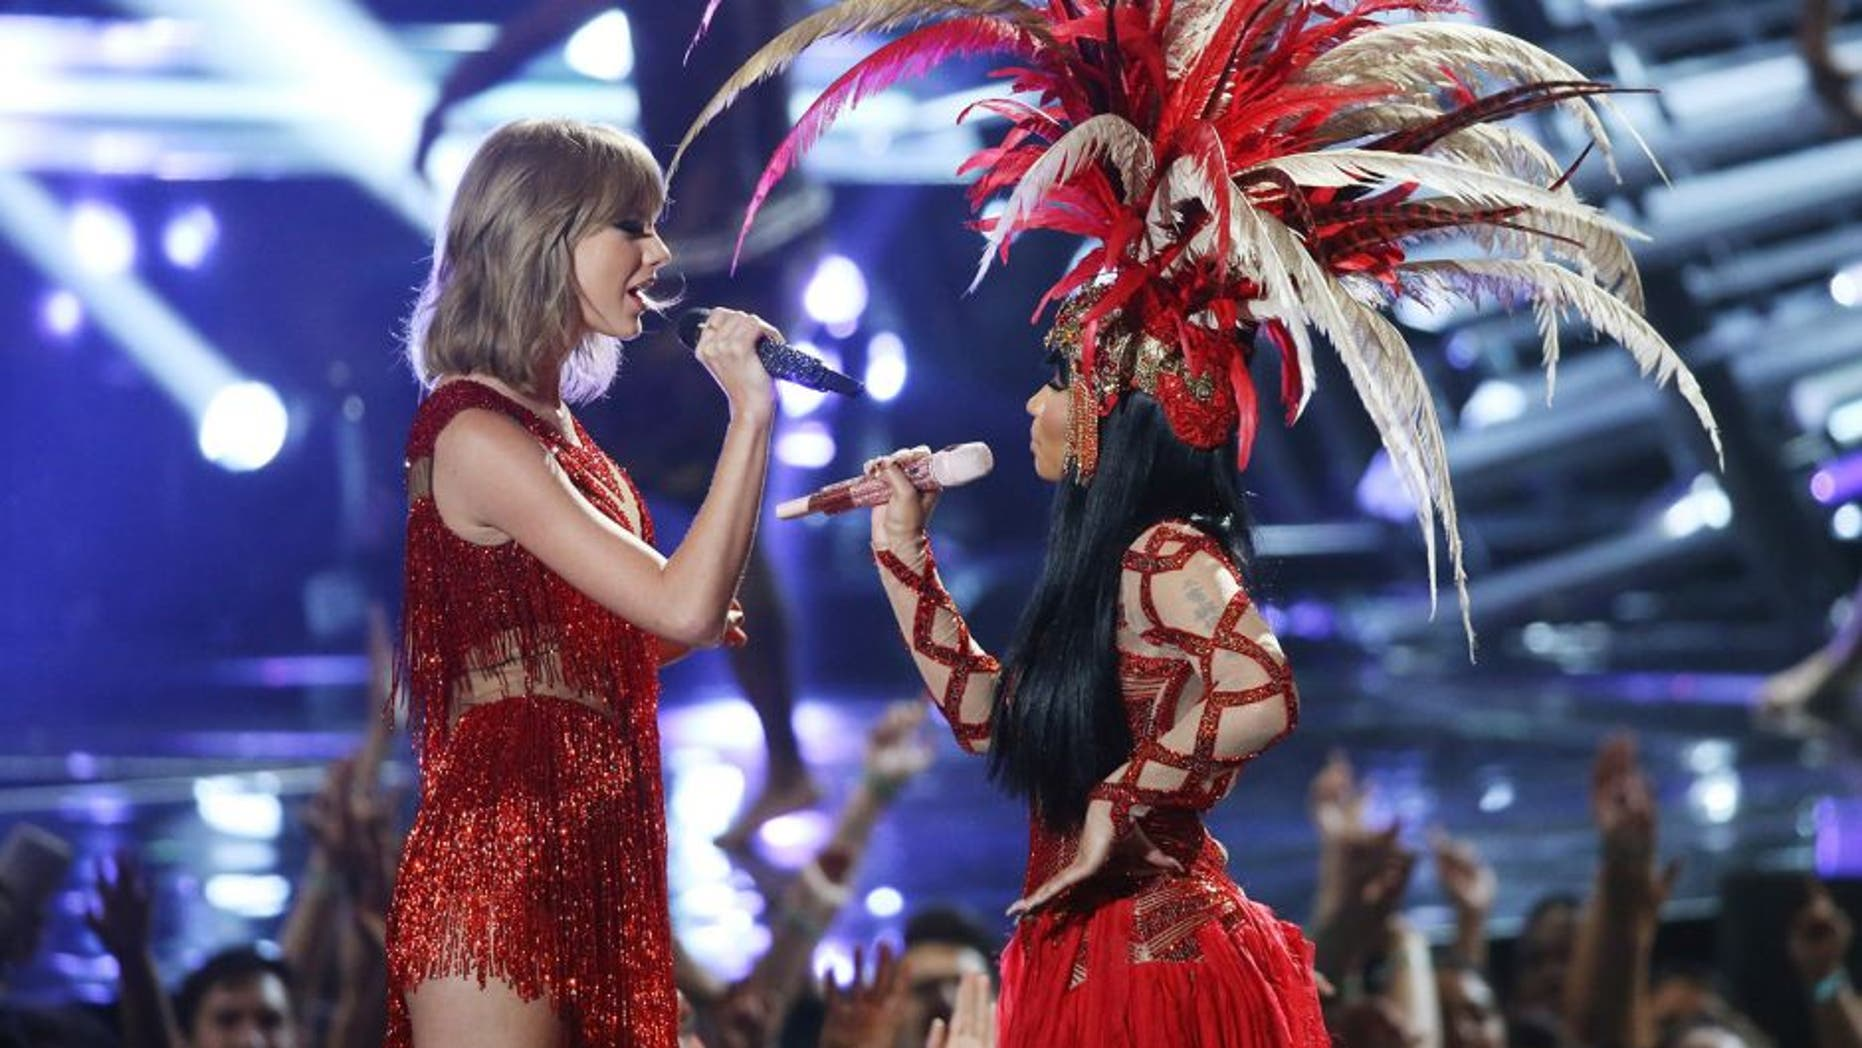 LOS ANGELES, CA - AUGUST 30: Taylor Swift (L) and Nicki Minaj perform onstage during the 2015 MTV Video Music Awards held at Microsoft Theater on August 30, 2015 in Los Angeles, California. (Photo by Michael Tran/FilmMagic)